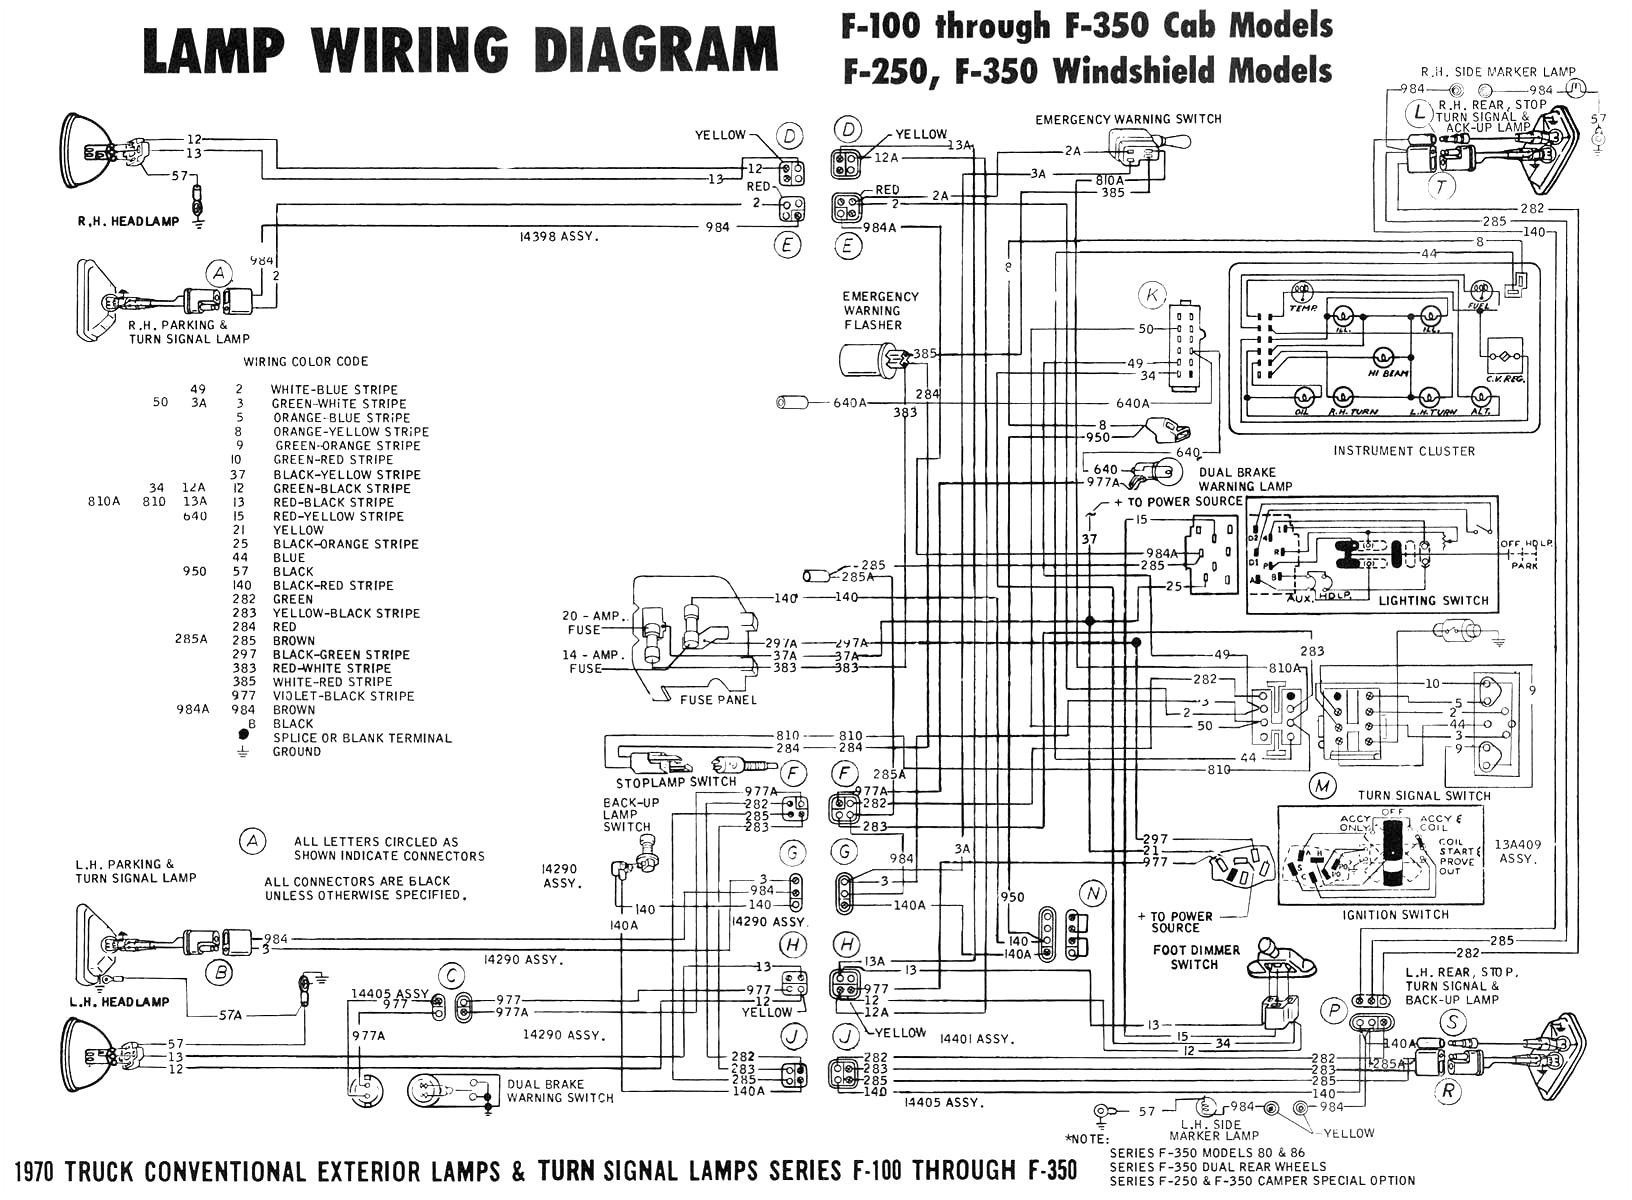 diagrams 2000 toyota camry furthermore toyota 4runner engine diagram diagram moreover diagram of a 91 civic distributor wiring furthermore